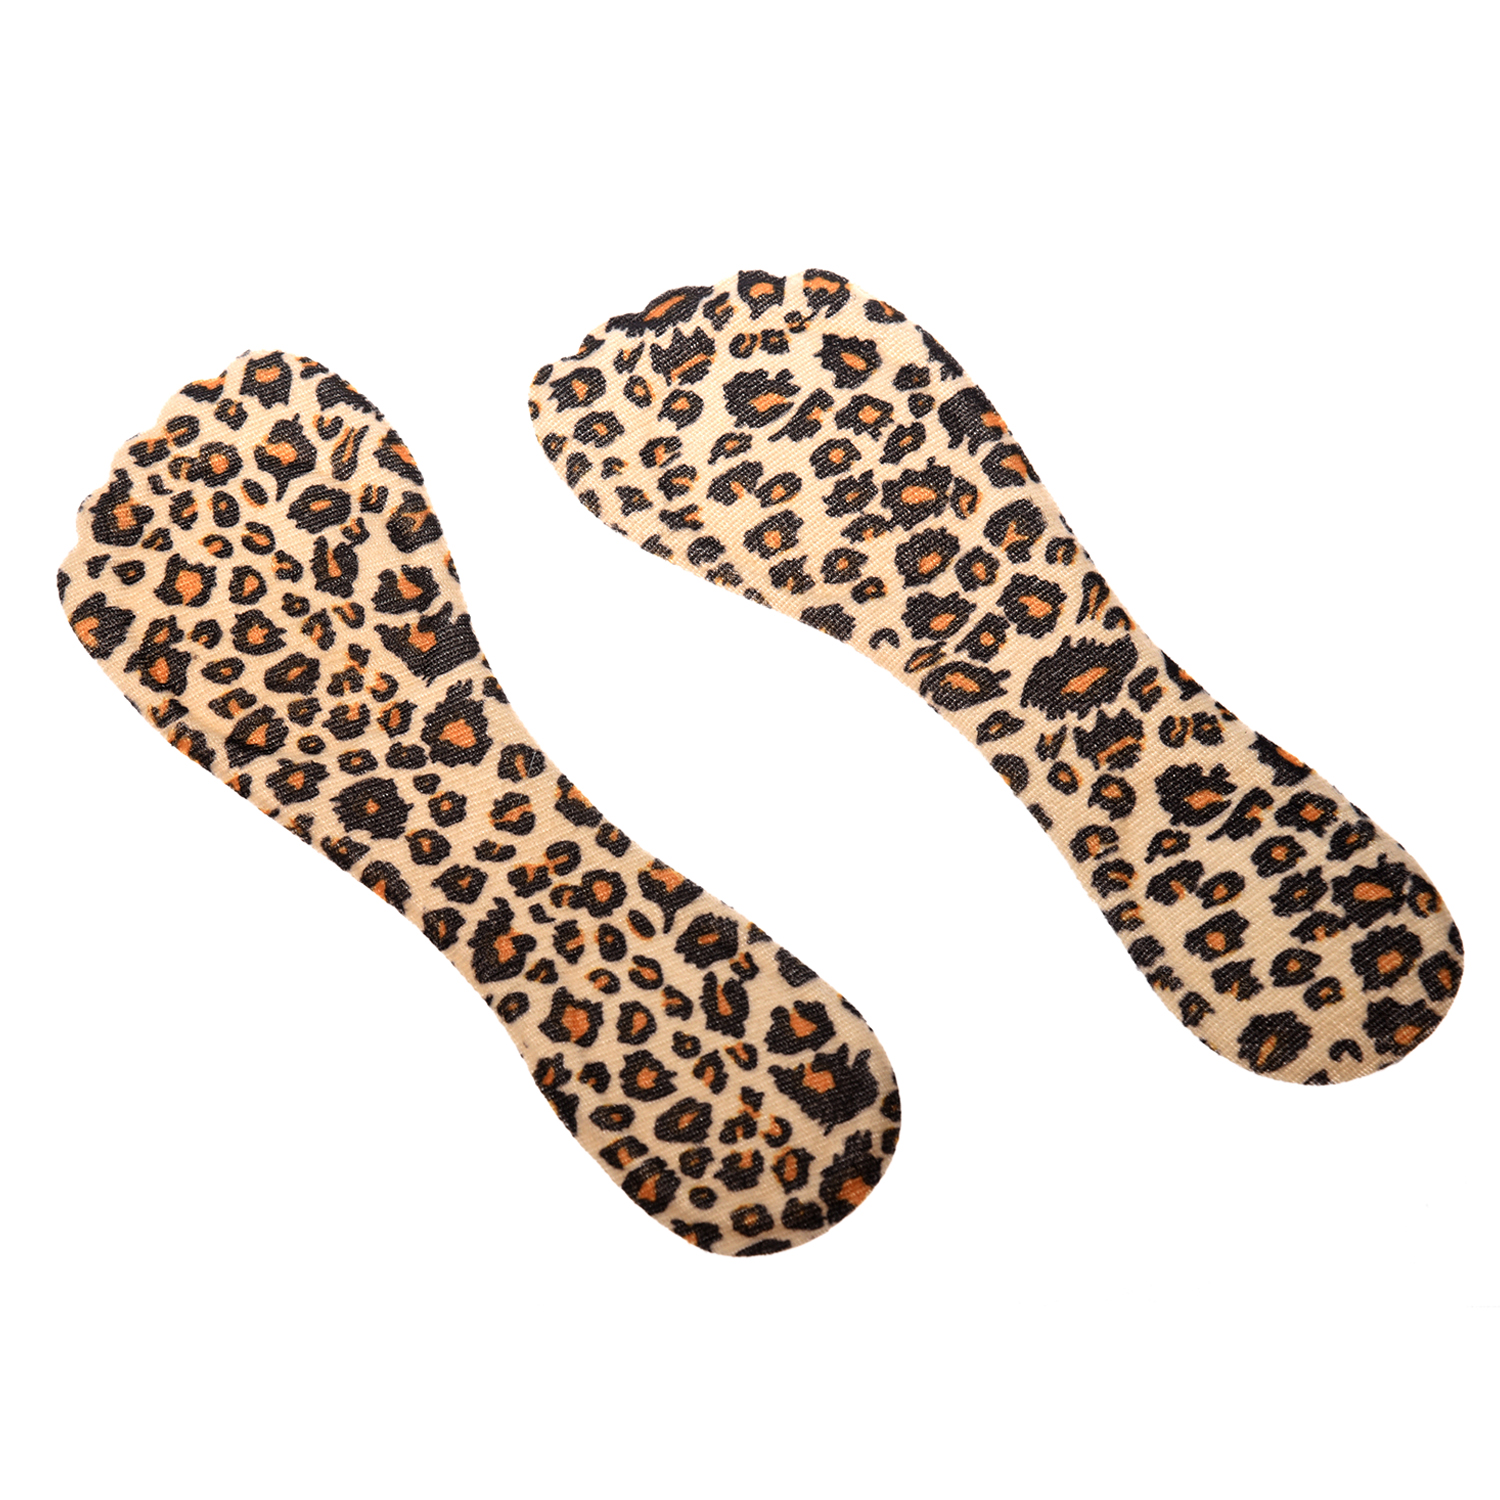 Fashion Boutique 1 Pair Silicone Heeled Shoes Insoles Adhesive Pads - Leopards fashion boutique silicone gel insoles